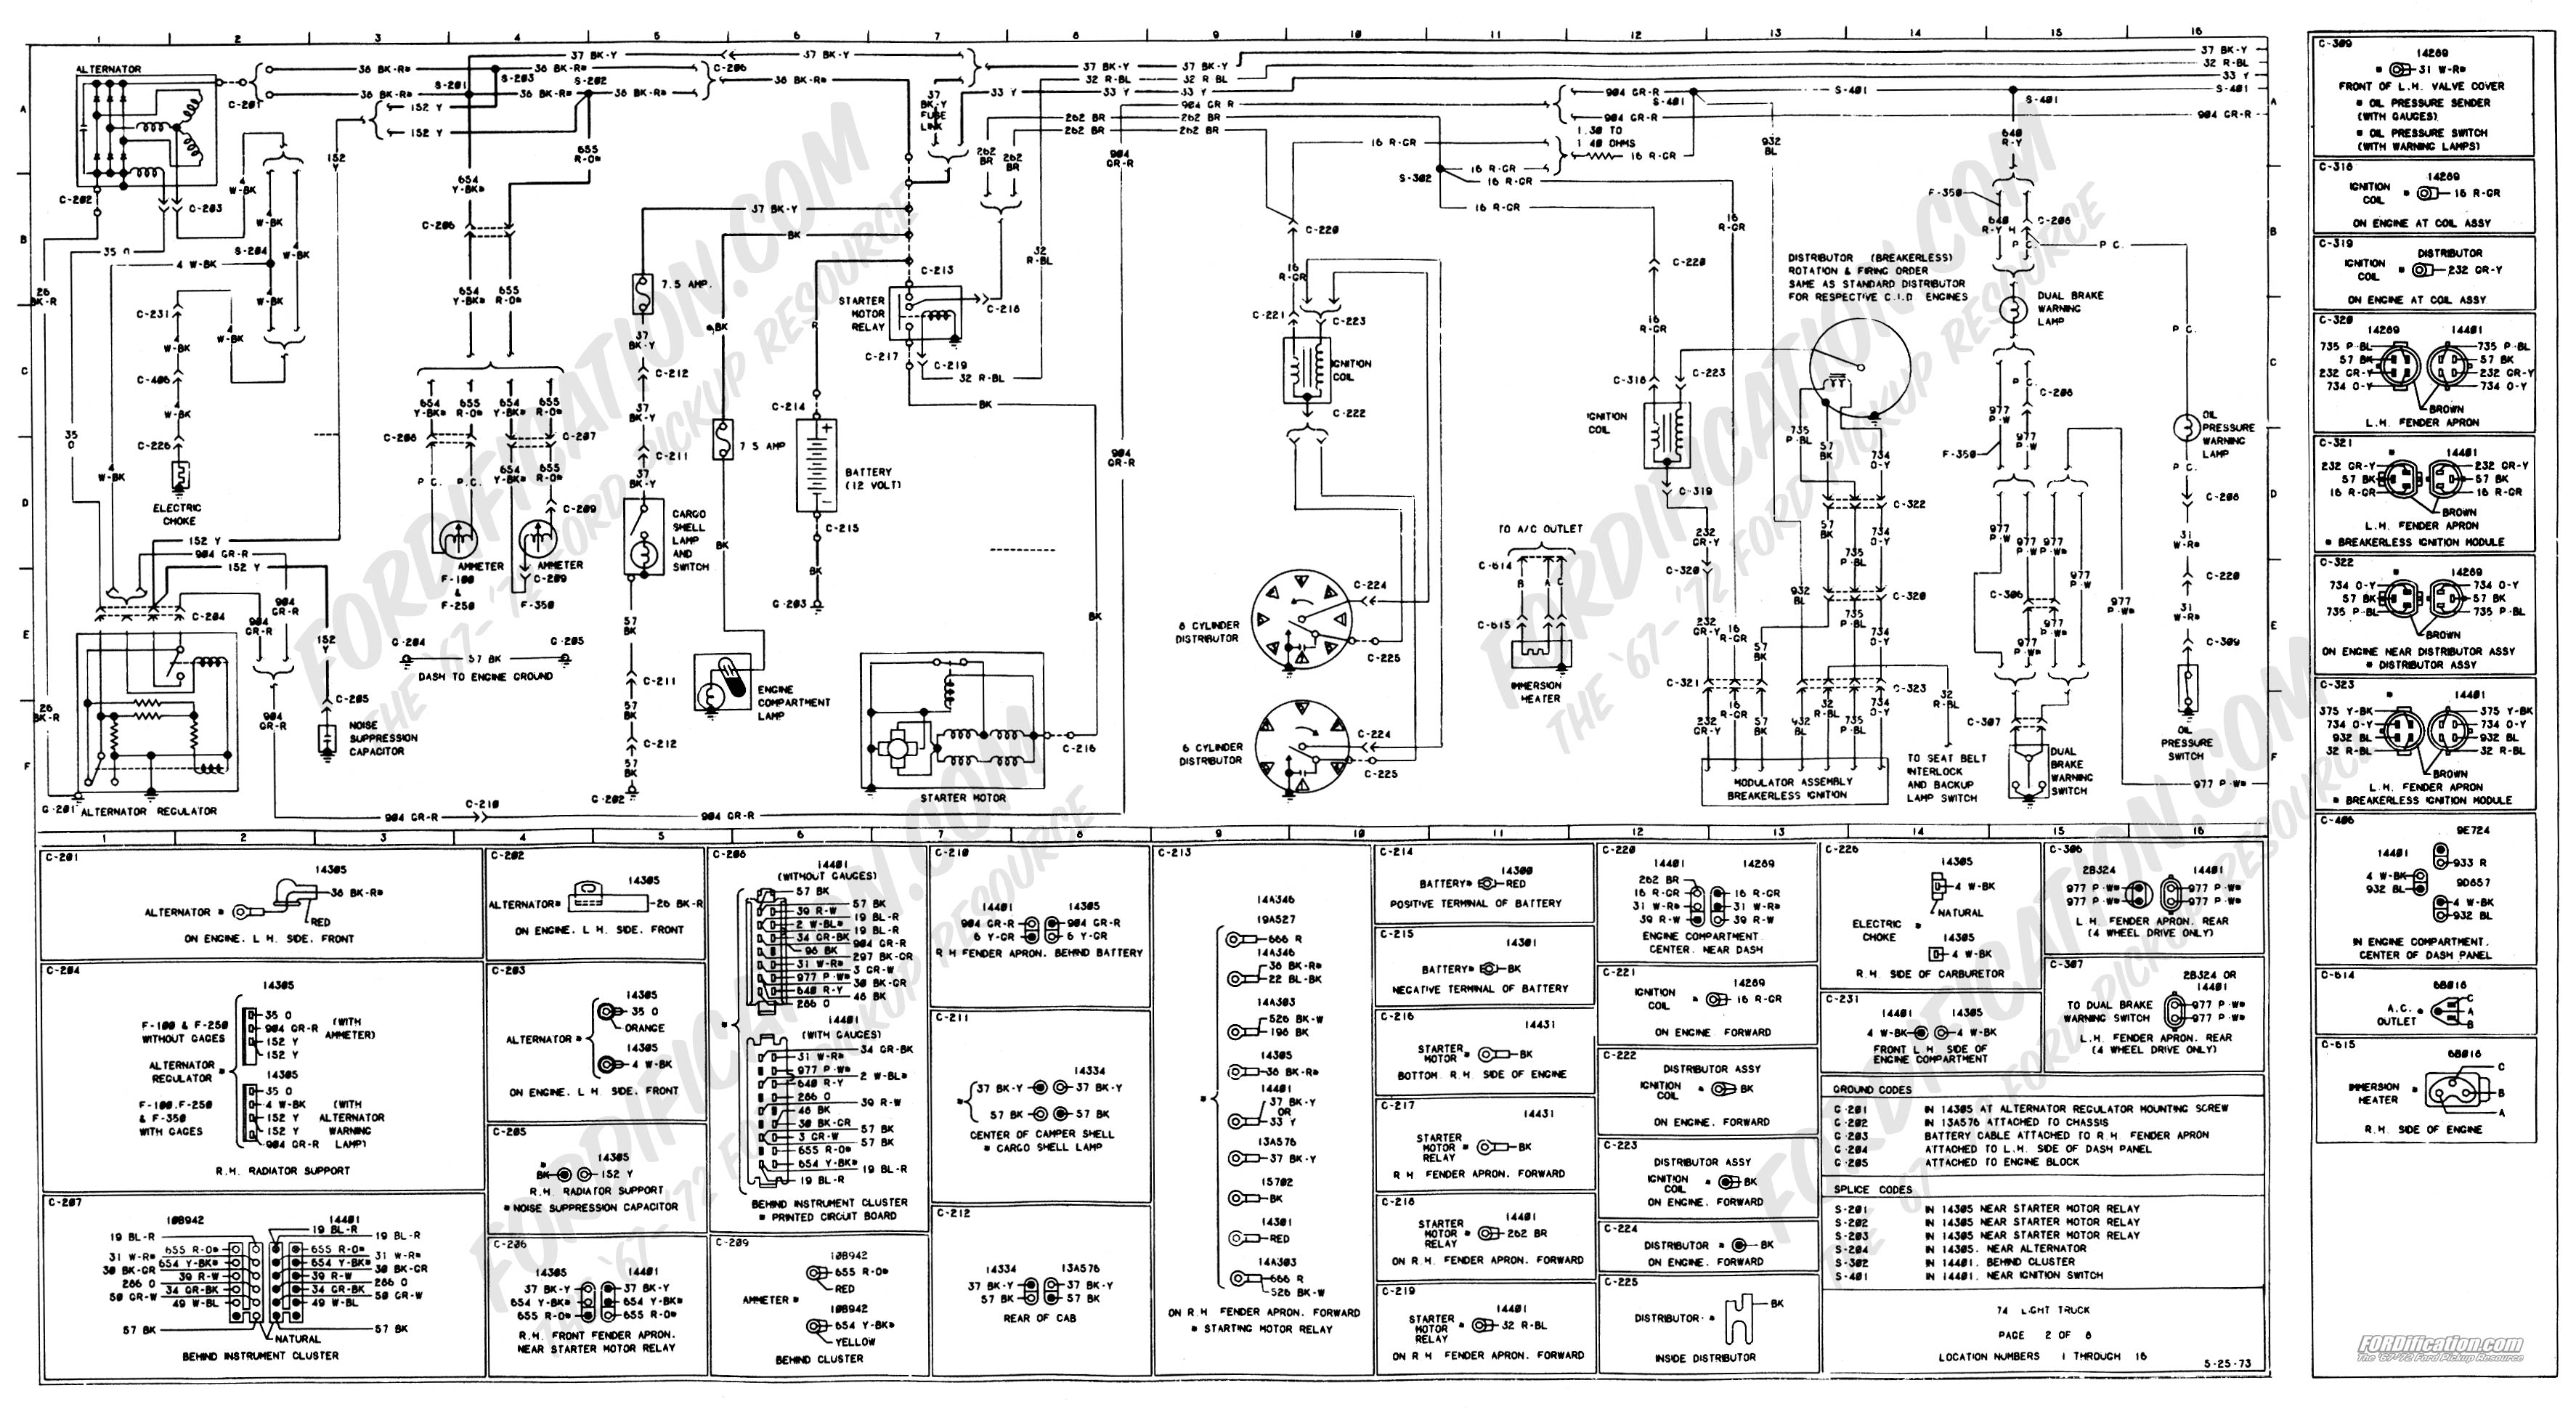 1973 1979 ford truck wiring diagrams schematics fordification net rh fordification net 1979 ford duraspark wiring diagram 1979 ford radio wiring diagram